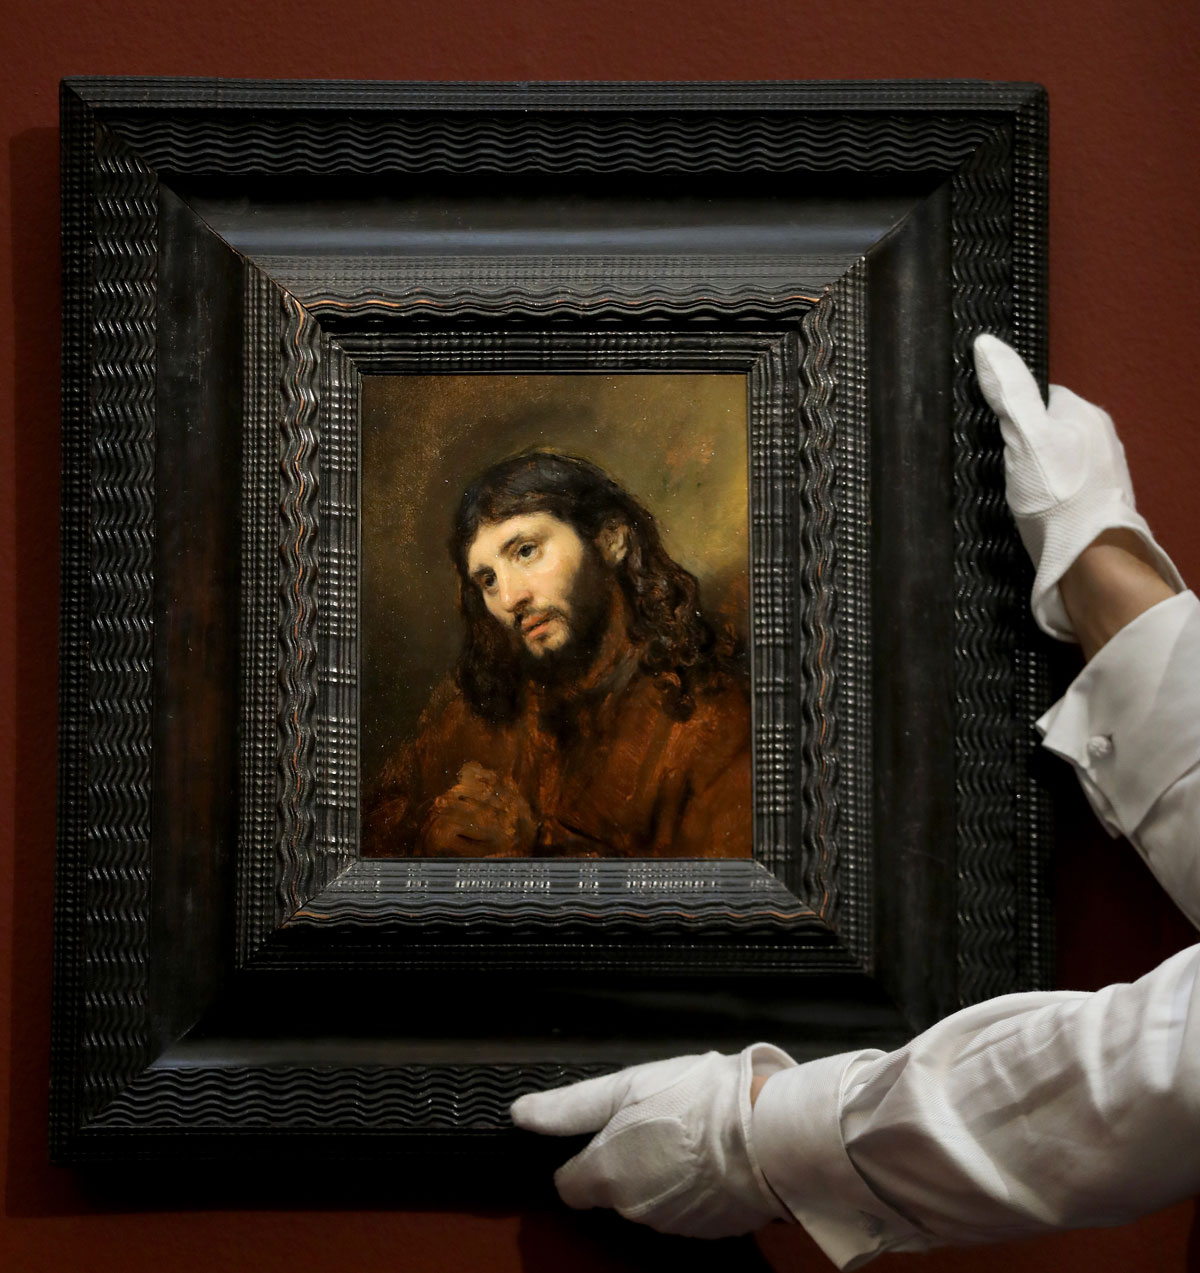 https://www.artsandcollections.com/wp-content/uploads/2018/12/Rare-Rembrandt-Sold-For-£9.5-million.jpg